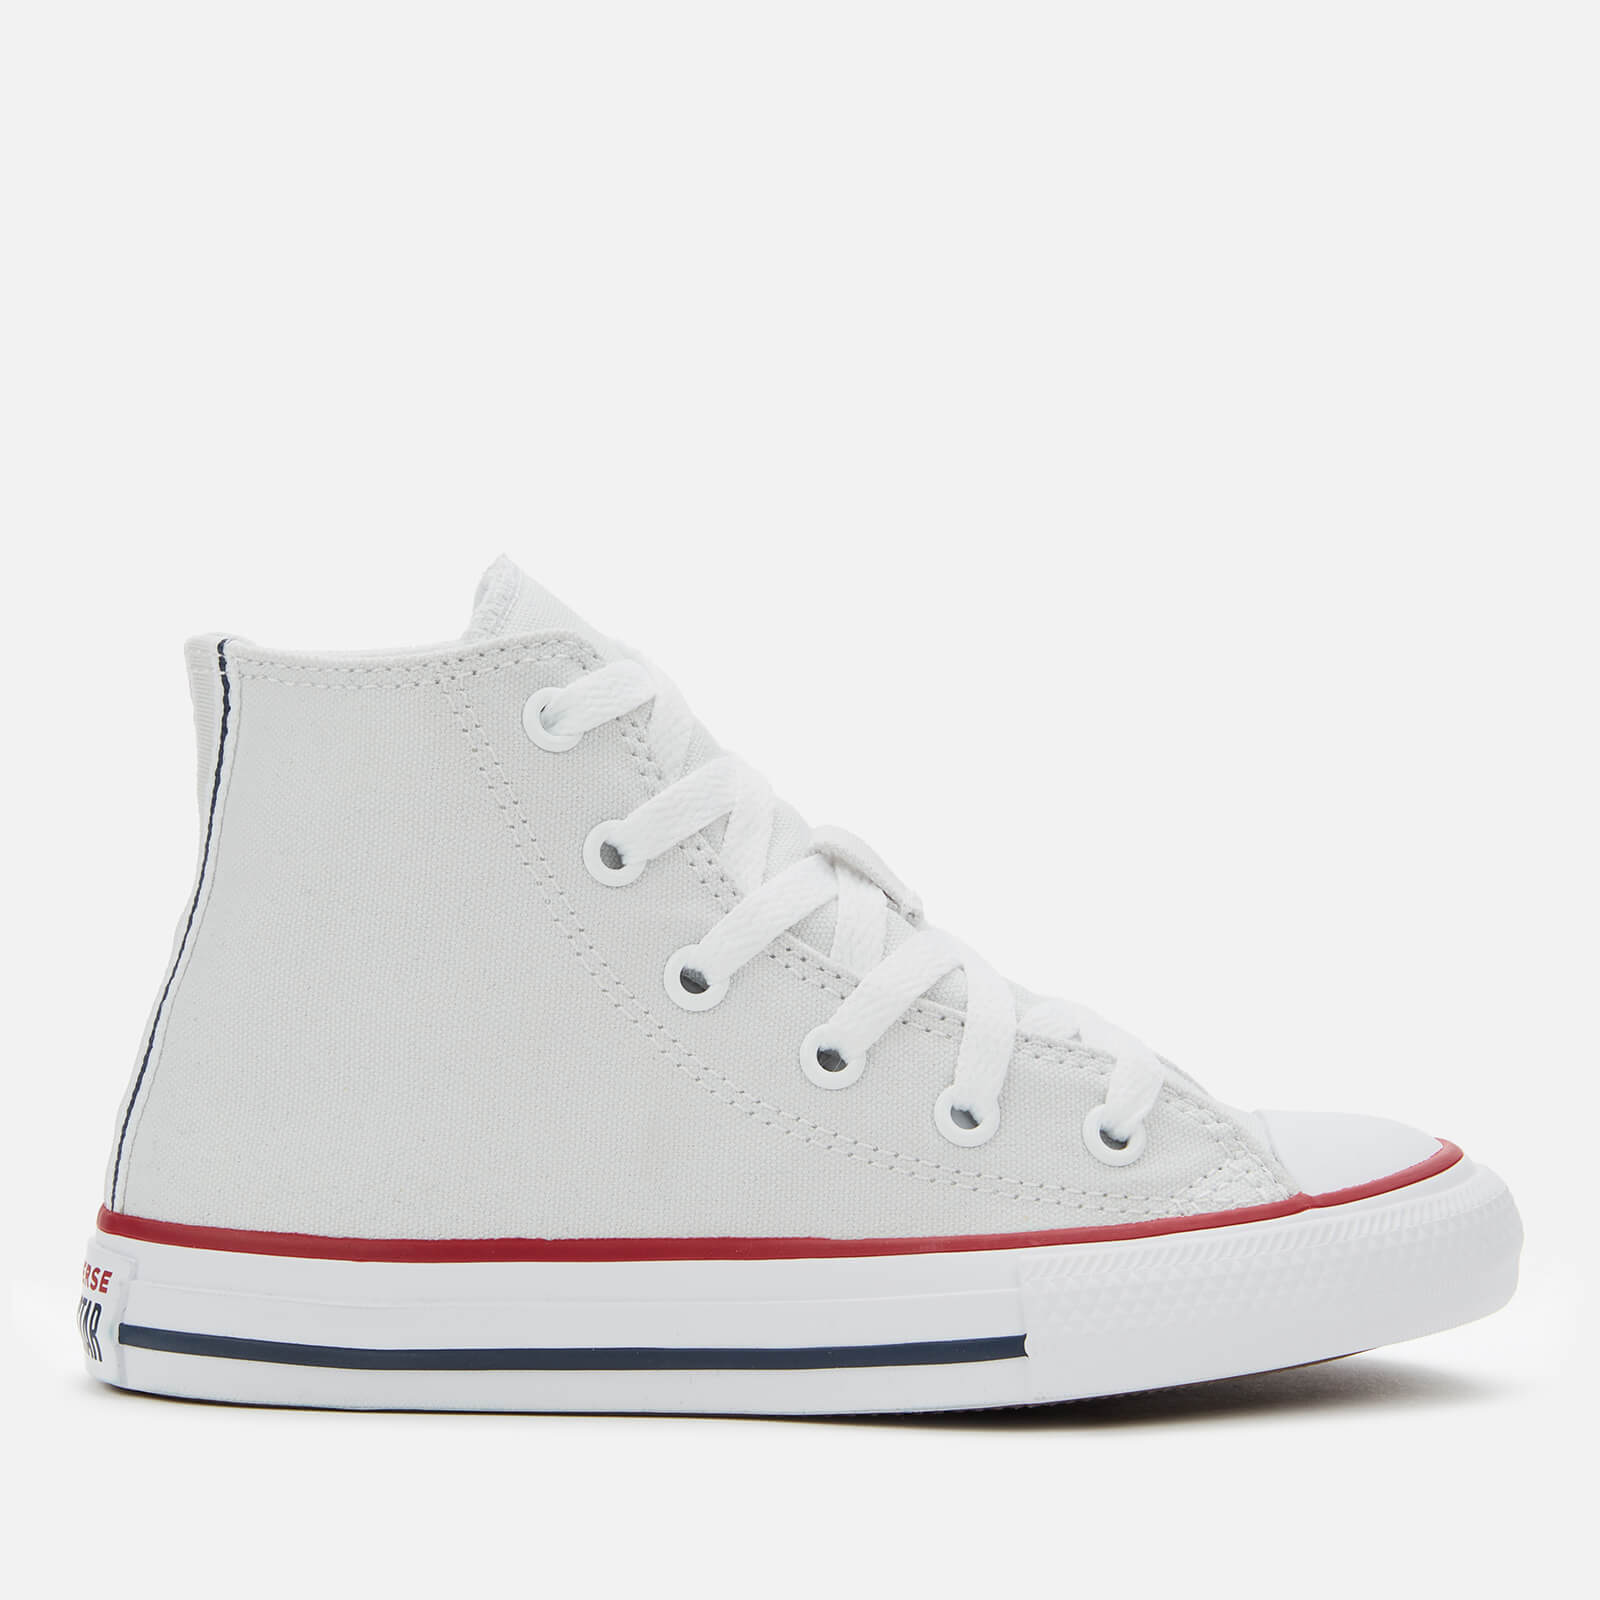 Converse Kids' Chuck Taylor All Star Twisted Varsity Hi Top Trainers Photon DustGarnetWhite